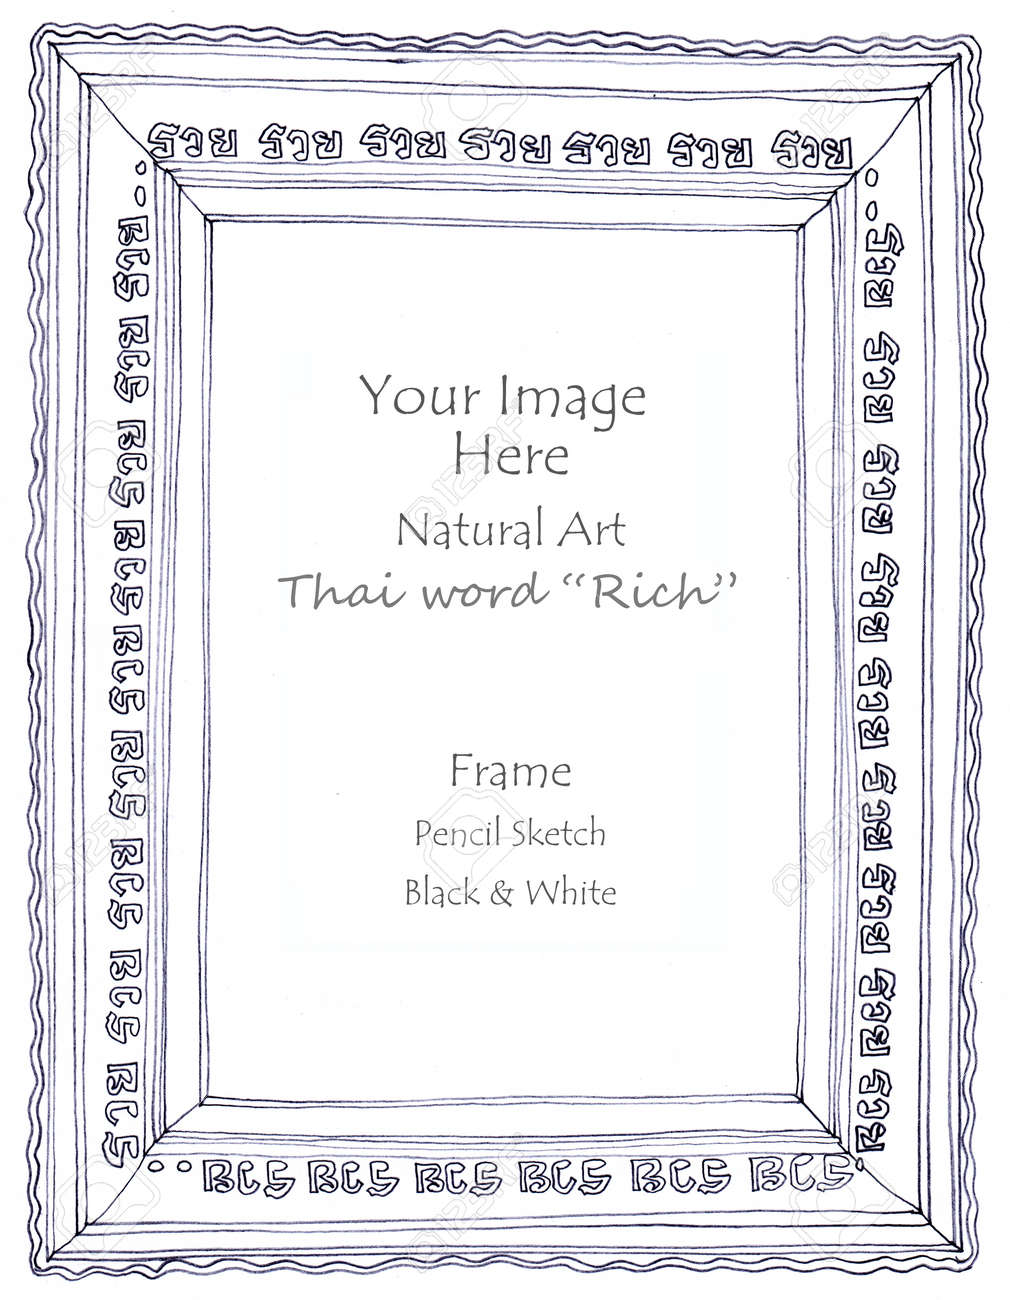 Frame thai word rich meaning and graphic wave art line pencil sketch by hand my idea